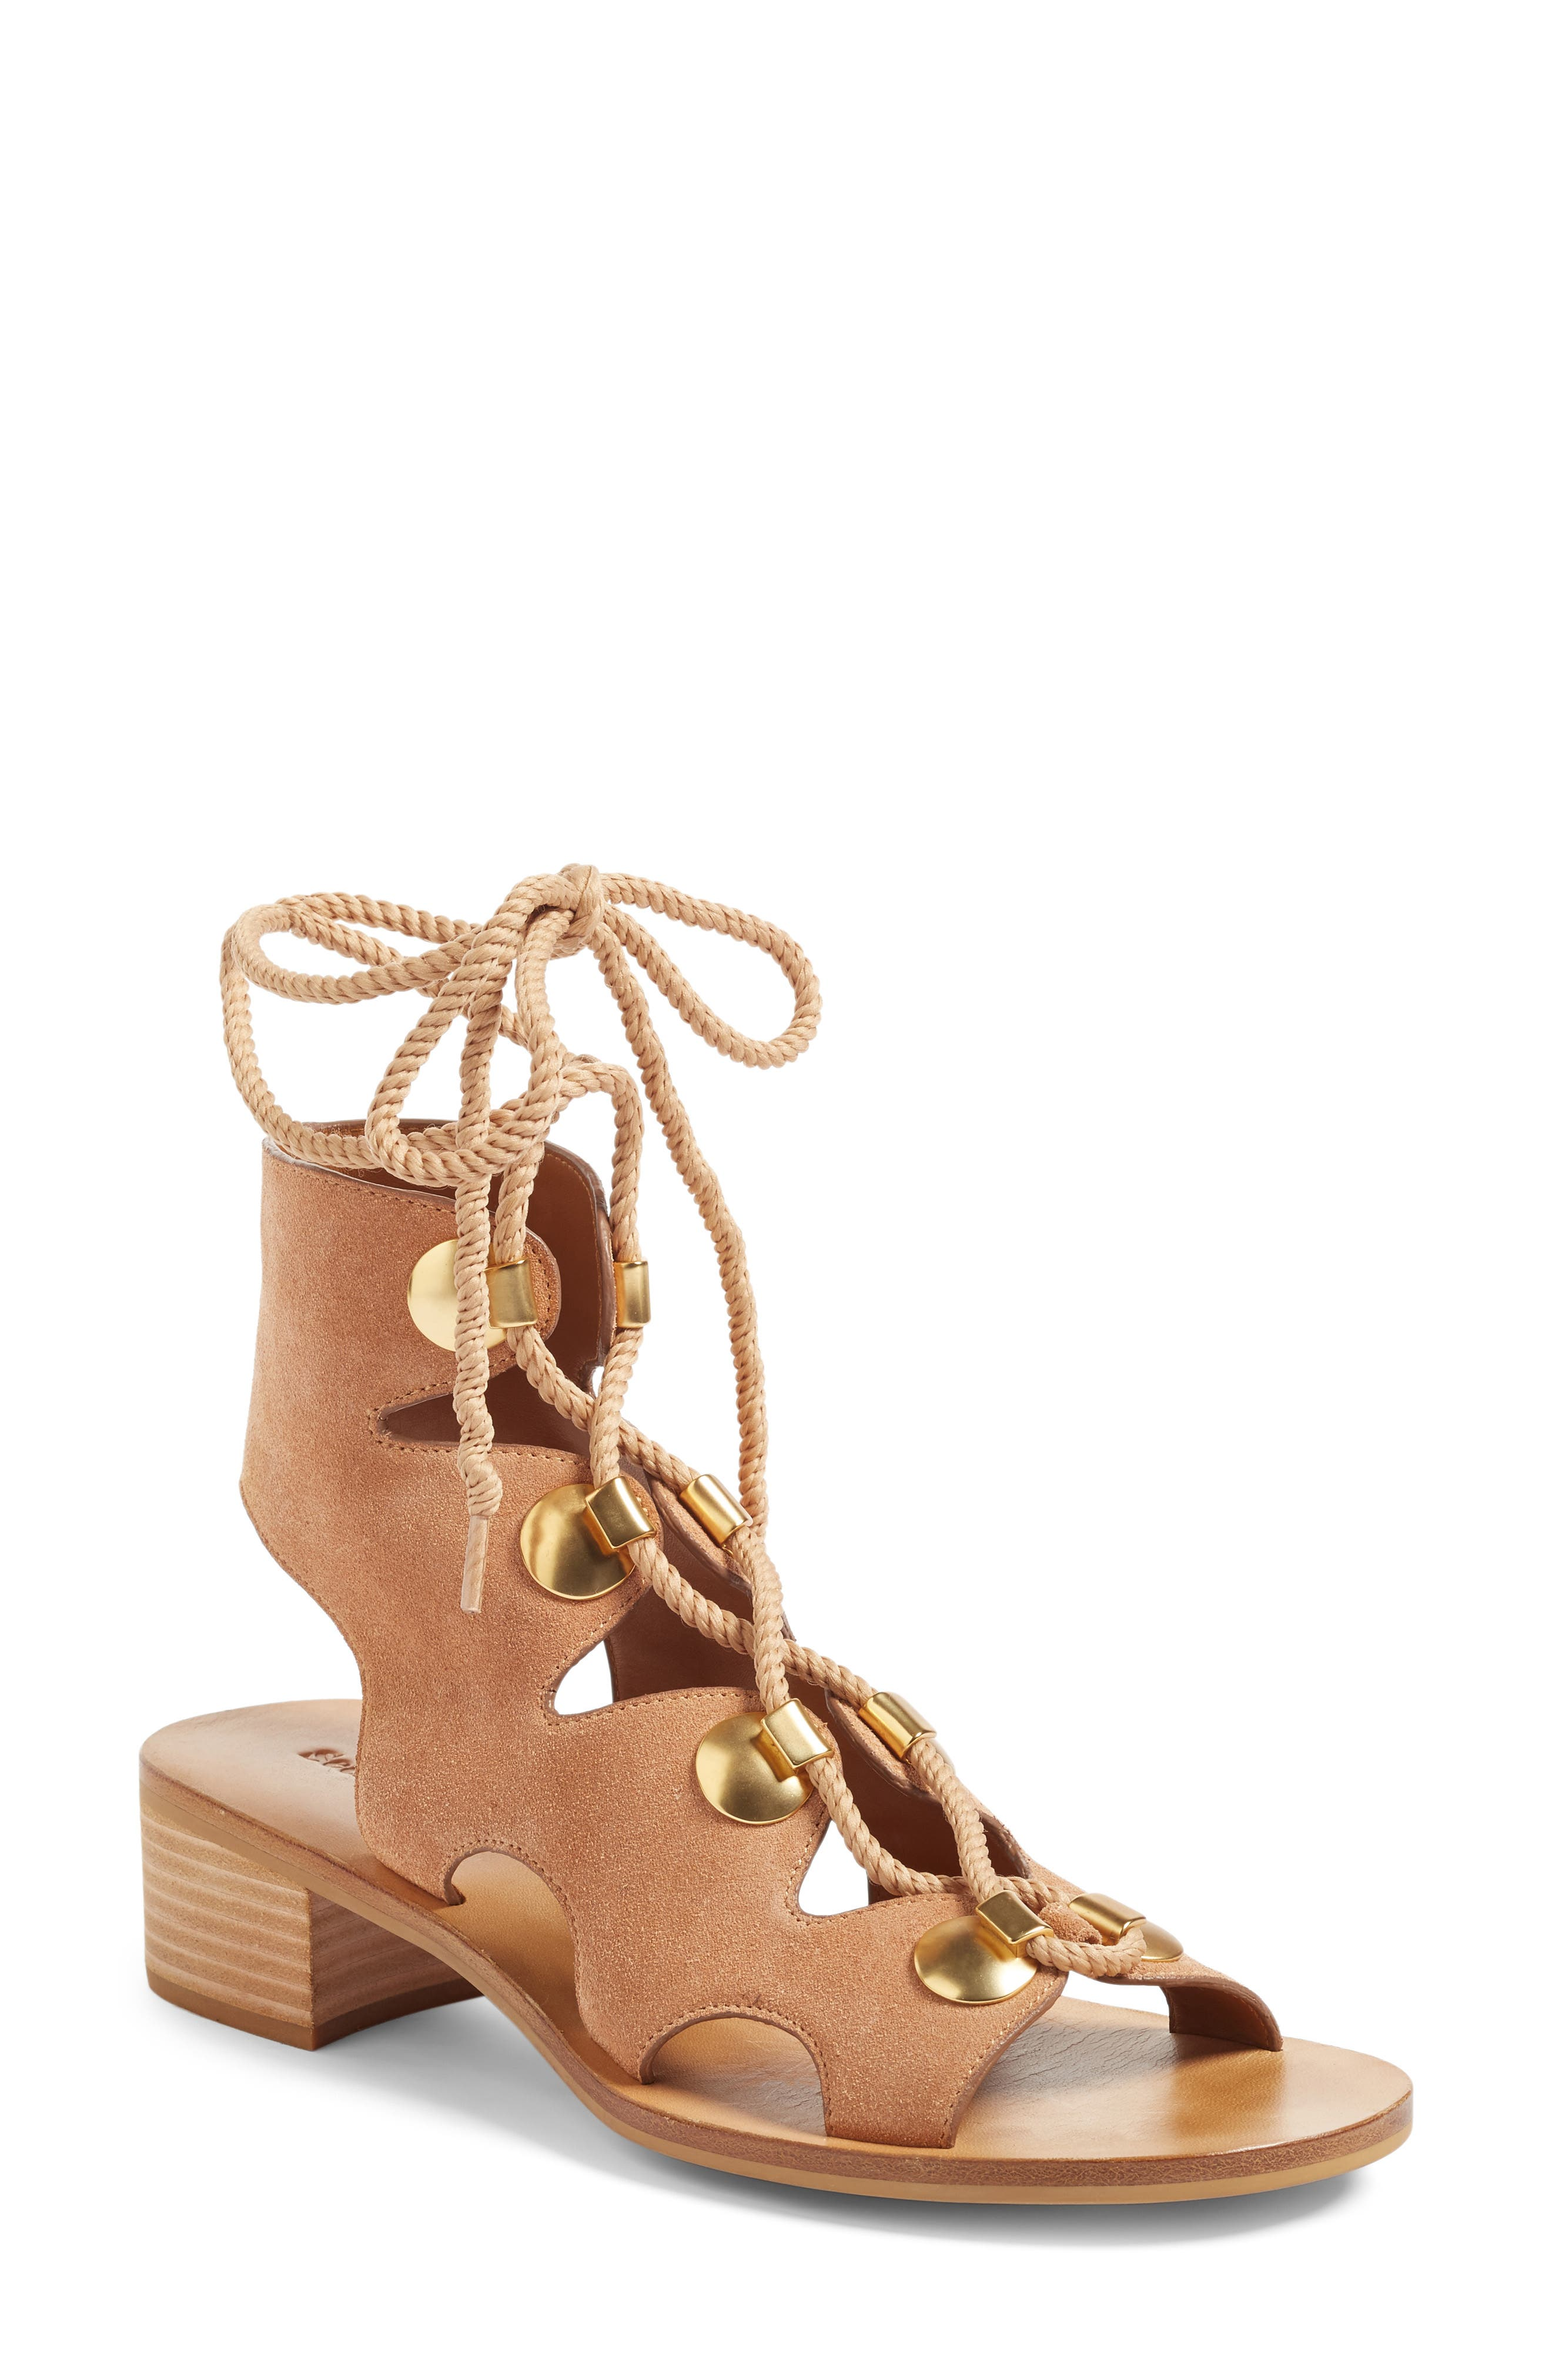 Alternate Image 1 Selected - See by Chloe Edna Gladiator Sandal (Women)